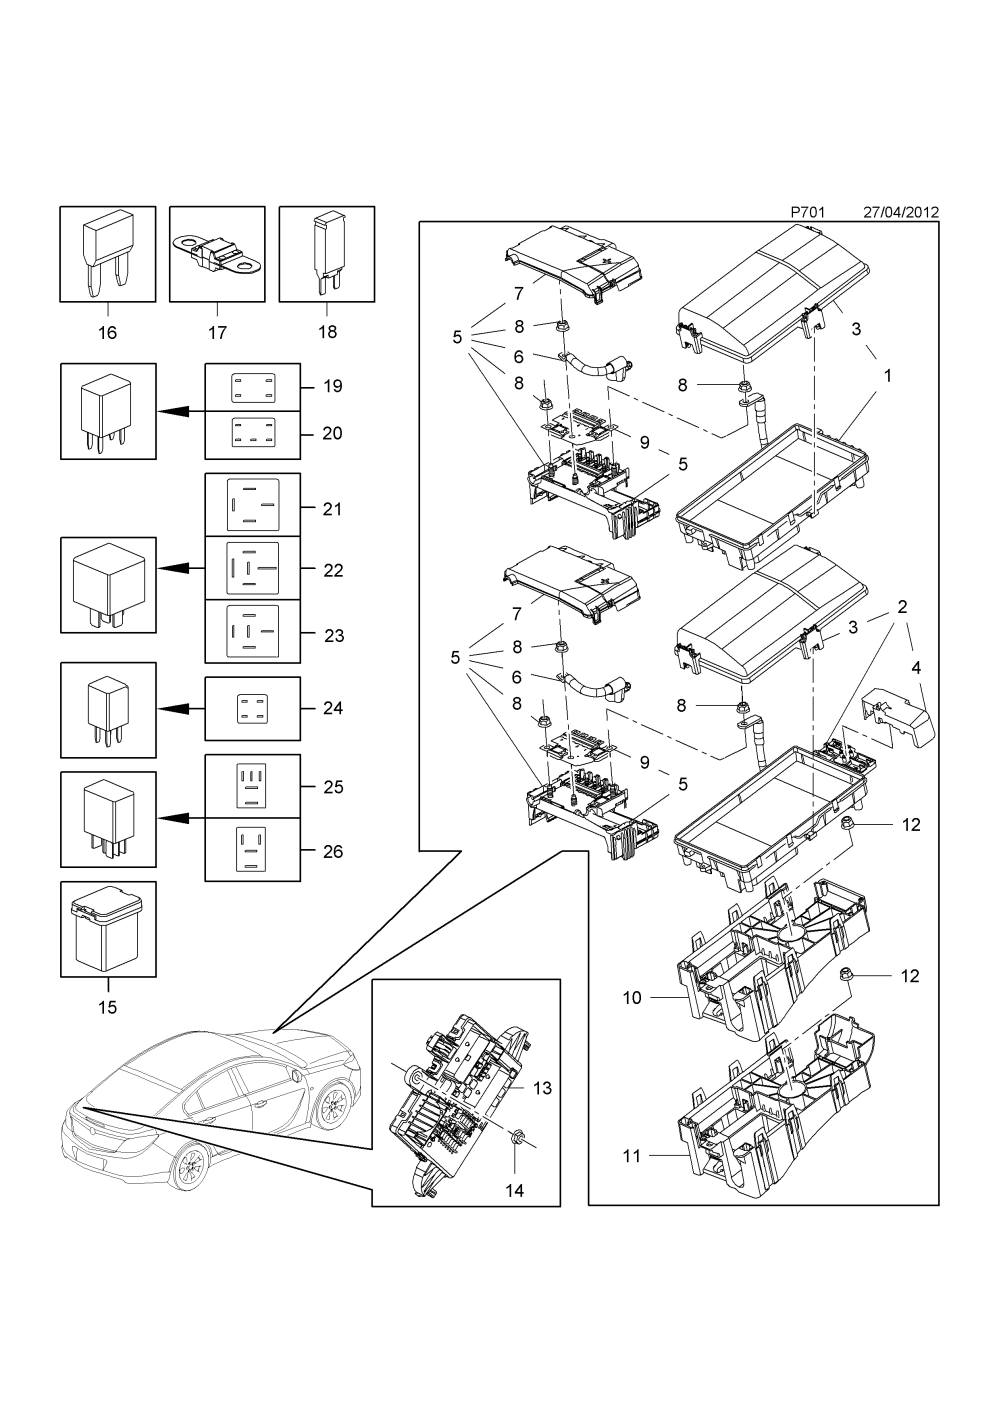 medium resolution of fuse box front a20dtc lcd a20dtl lbq a20dtj lbx a20dt lbr a20dte lhv a20dth lbs b20dth lfs a20dtr lby diesel engines vauxhall insignia